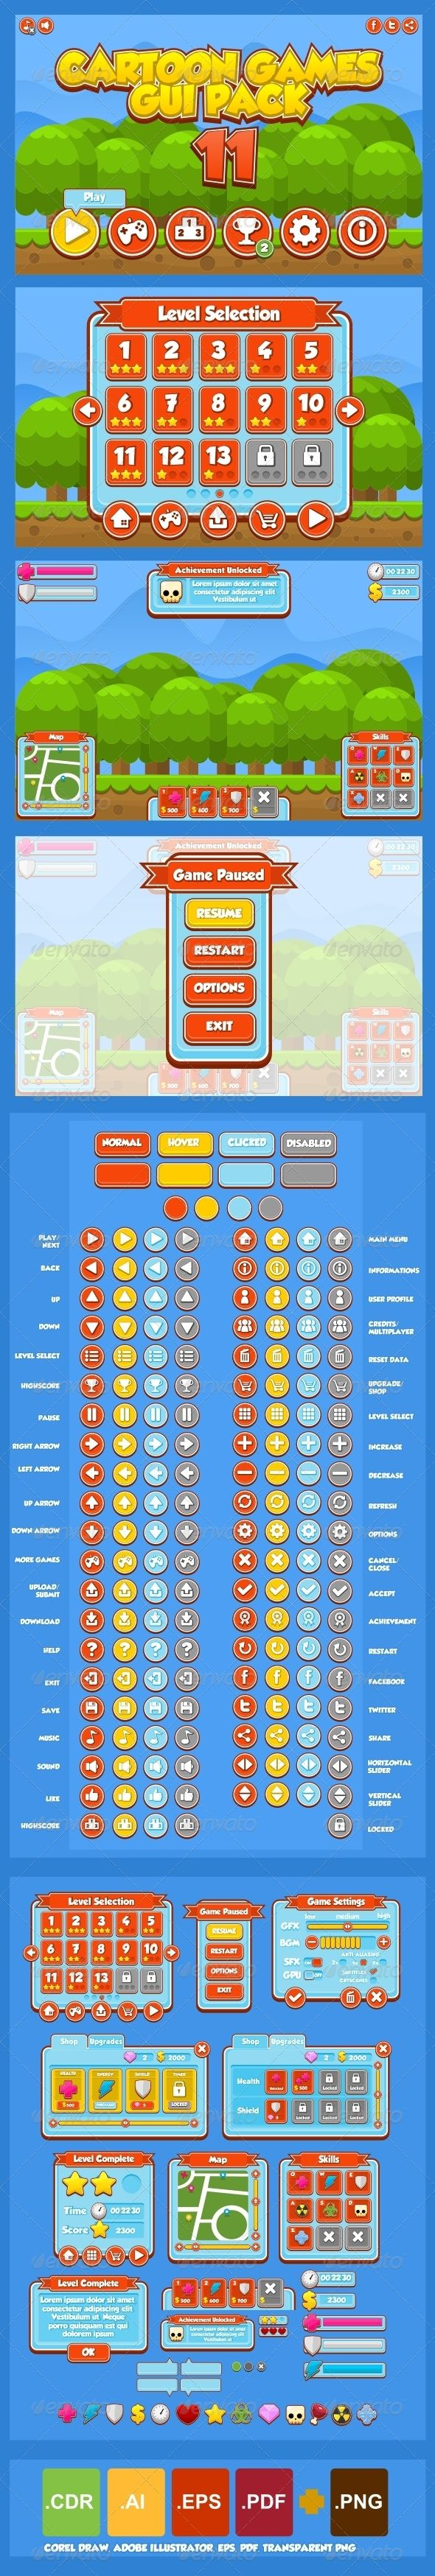 Cartoon Games GUI Pack 11  - Web Elements Vectors